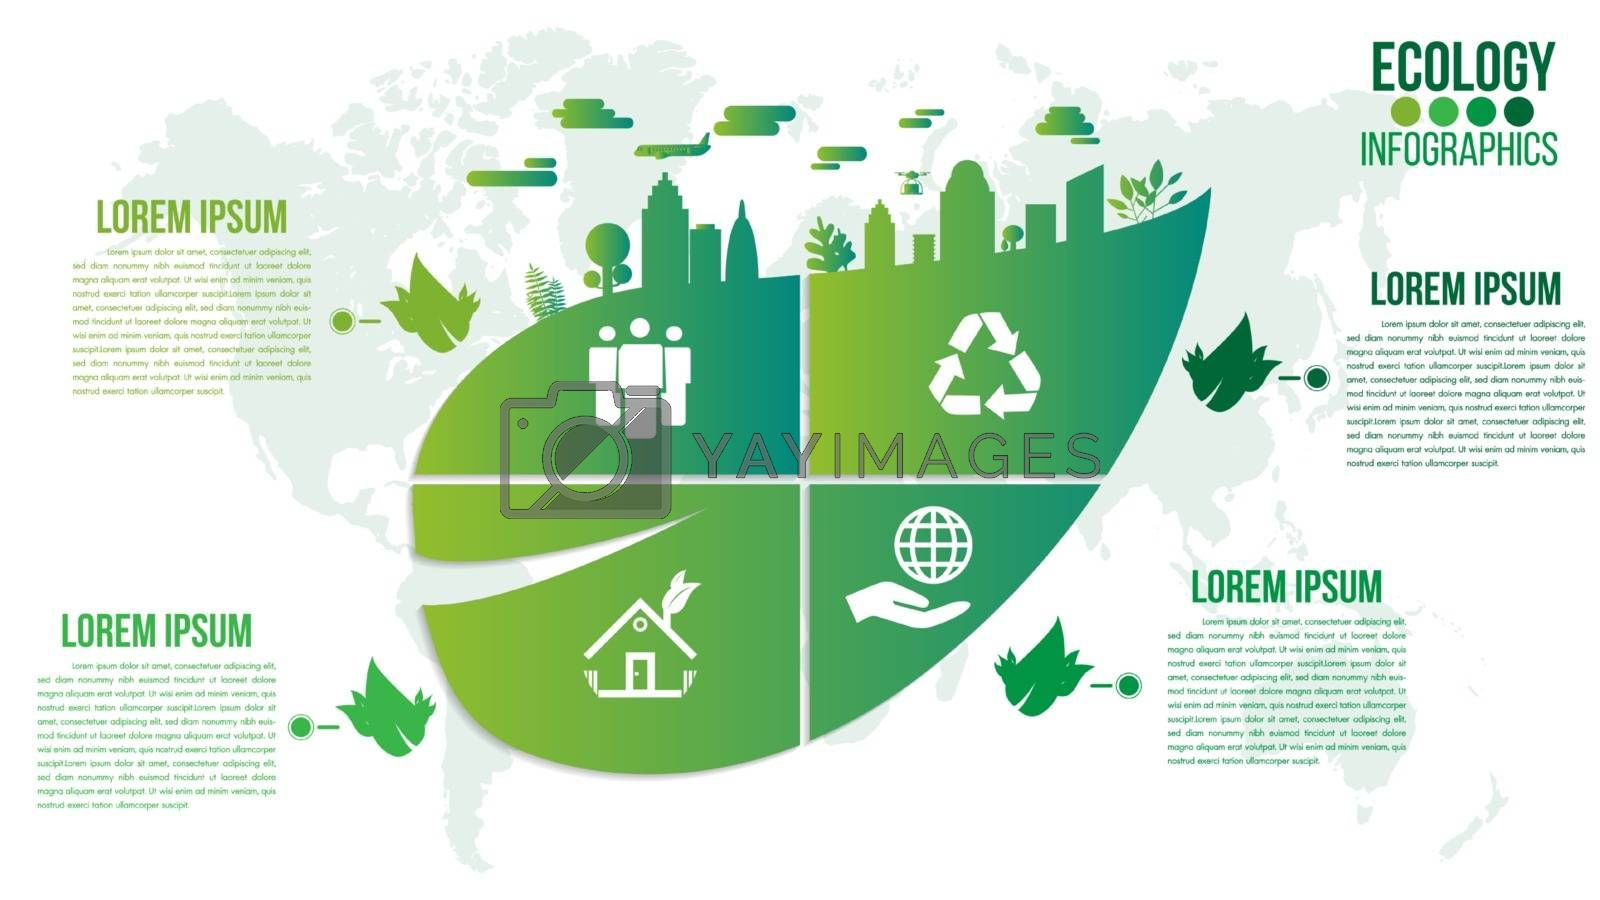 Ecology infographics green friendly environment with leaf and world map vector design layout.Recycle system element sustainable growth.Green concept with 4 options, parts, steps or points.